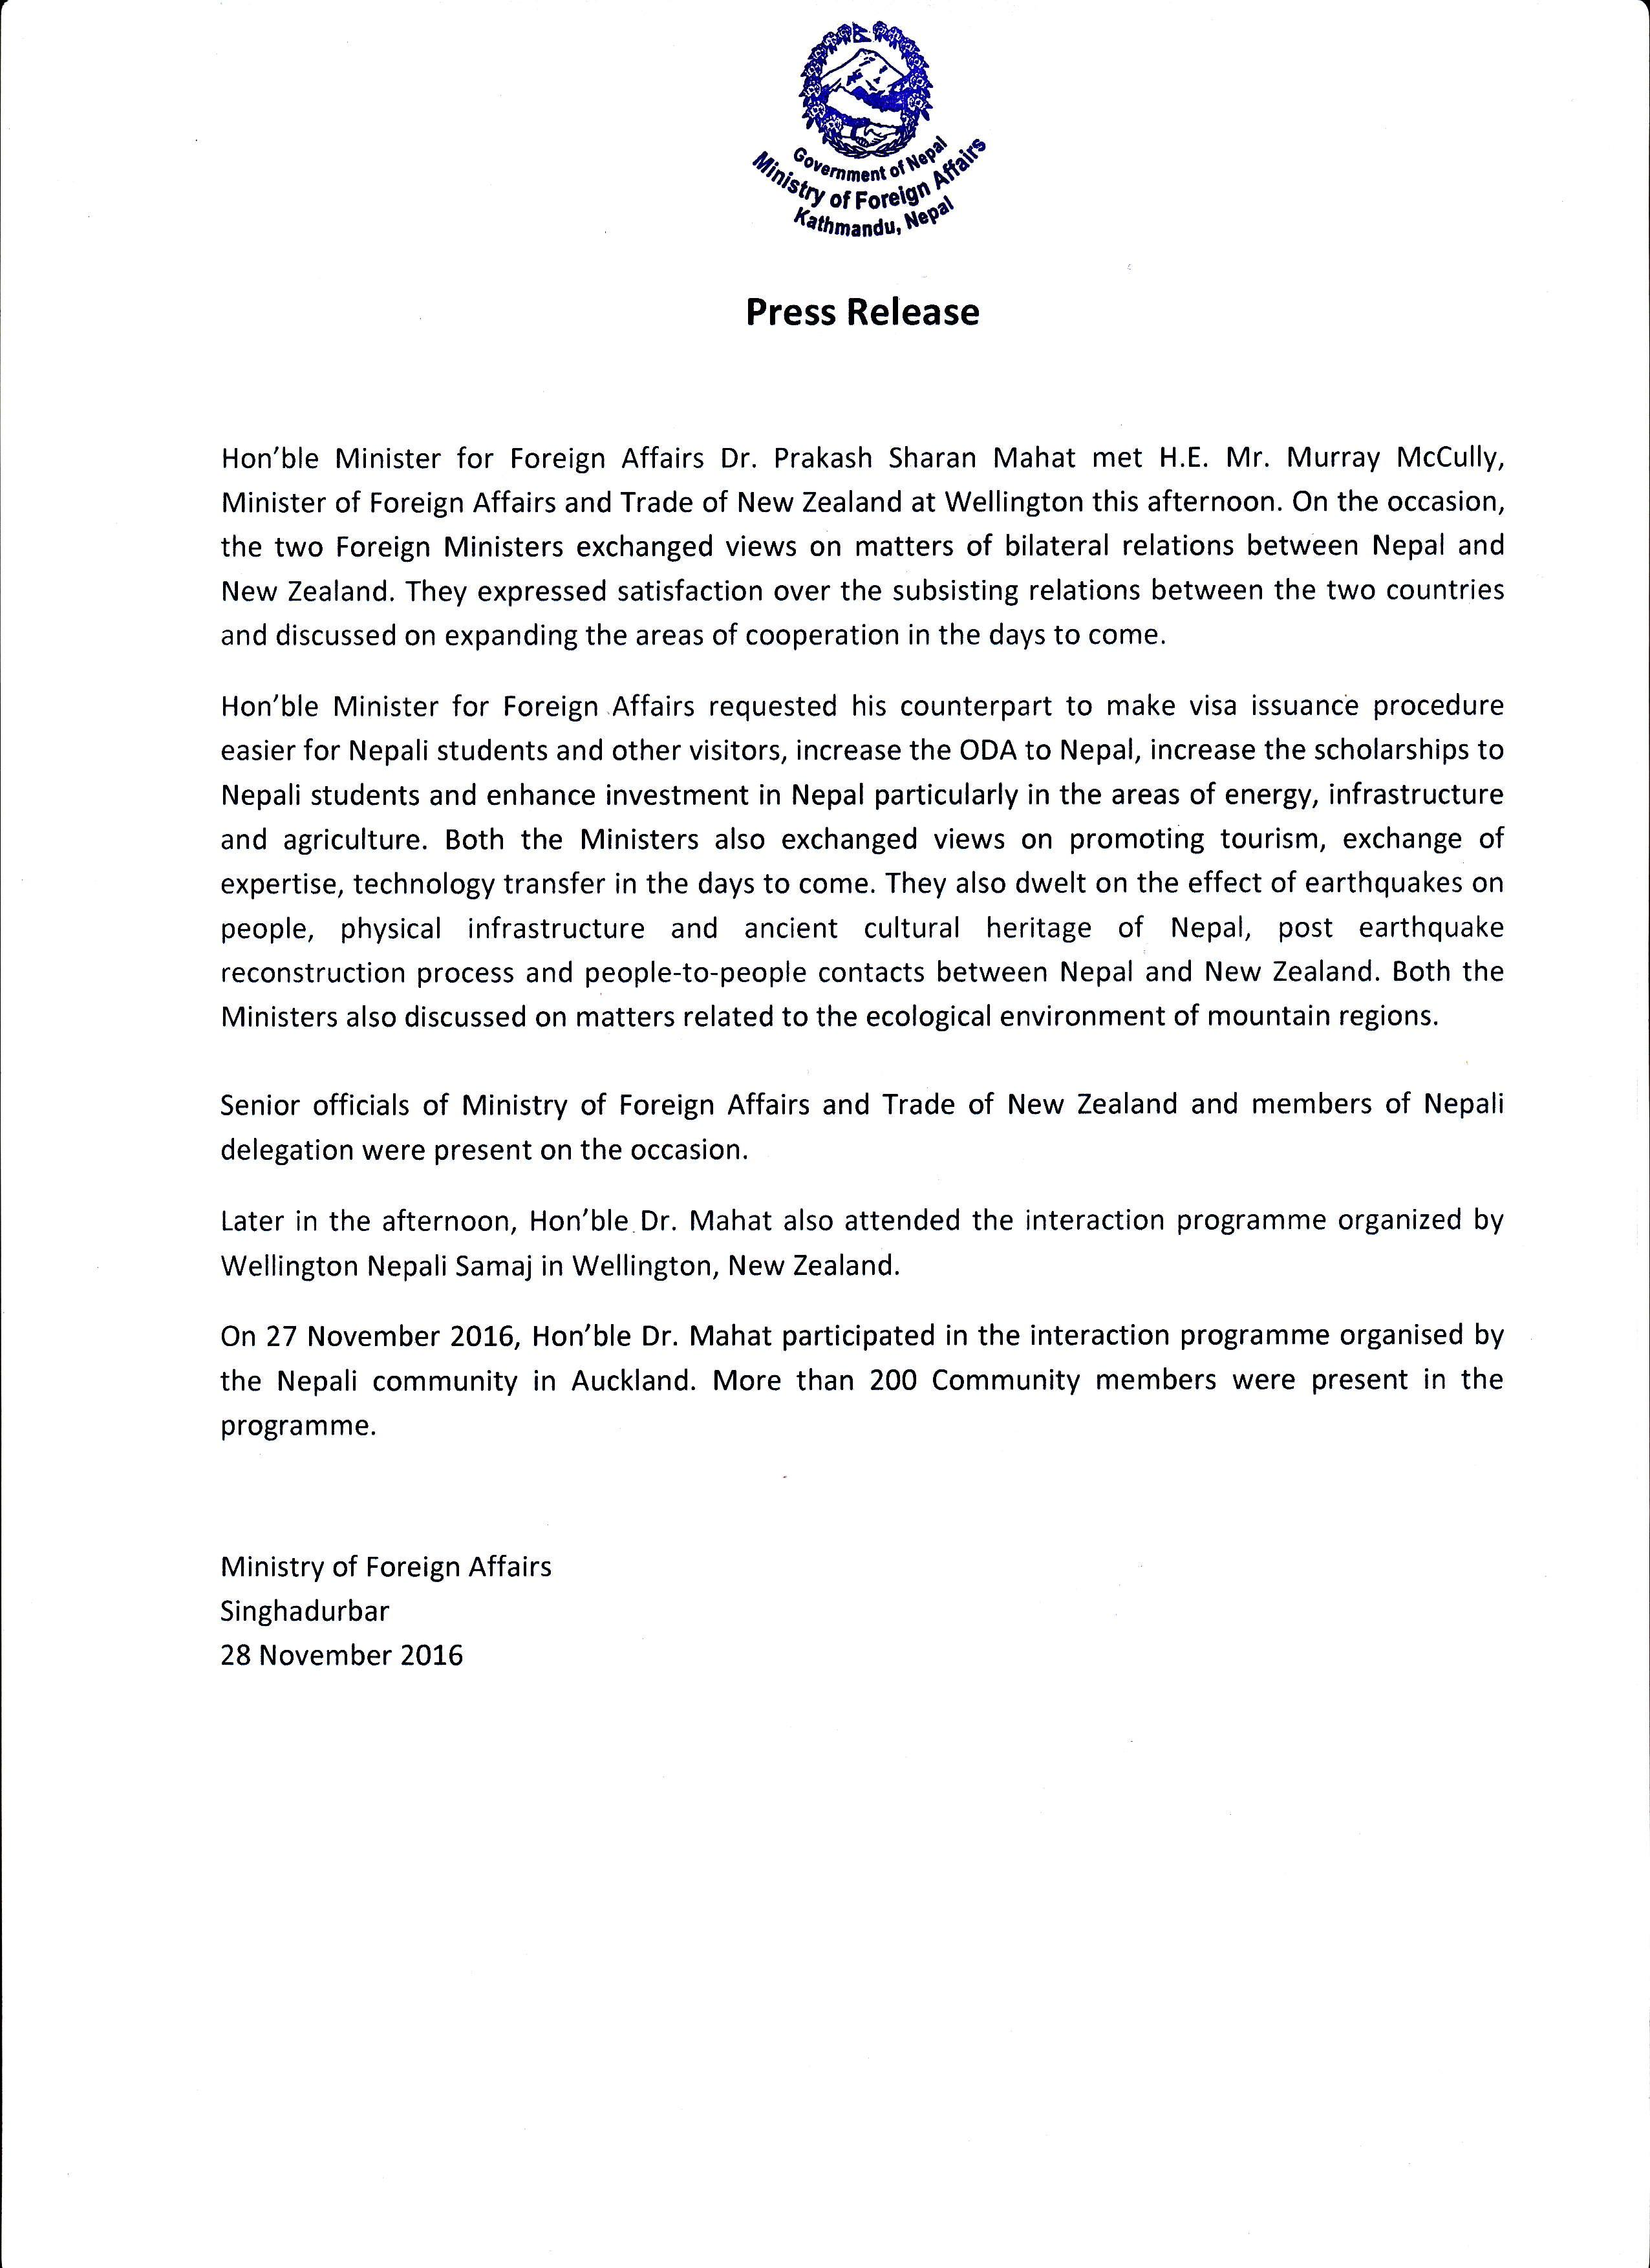 press-release-on-hon-ble-foreign-minister-s-new-zealand-visit-page-001